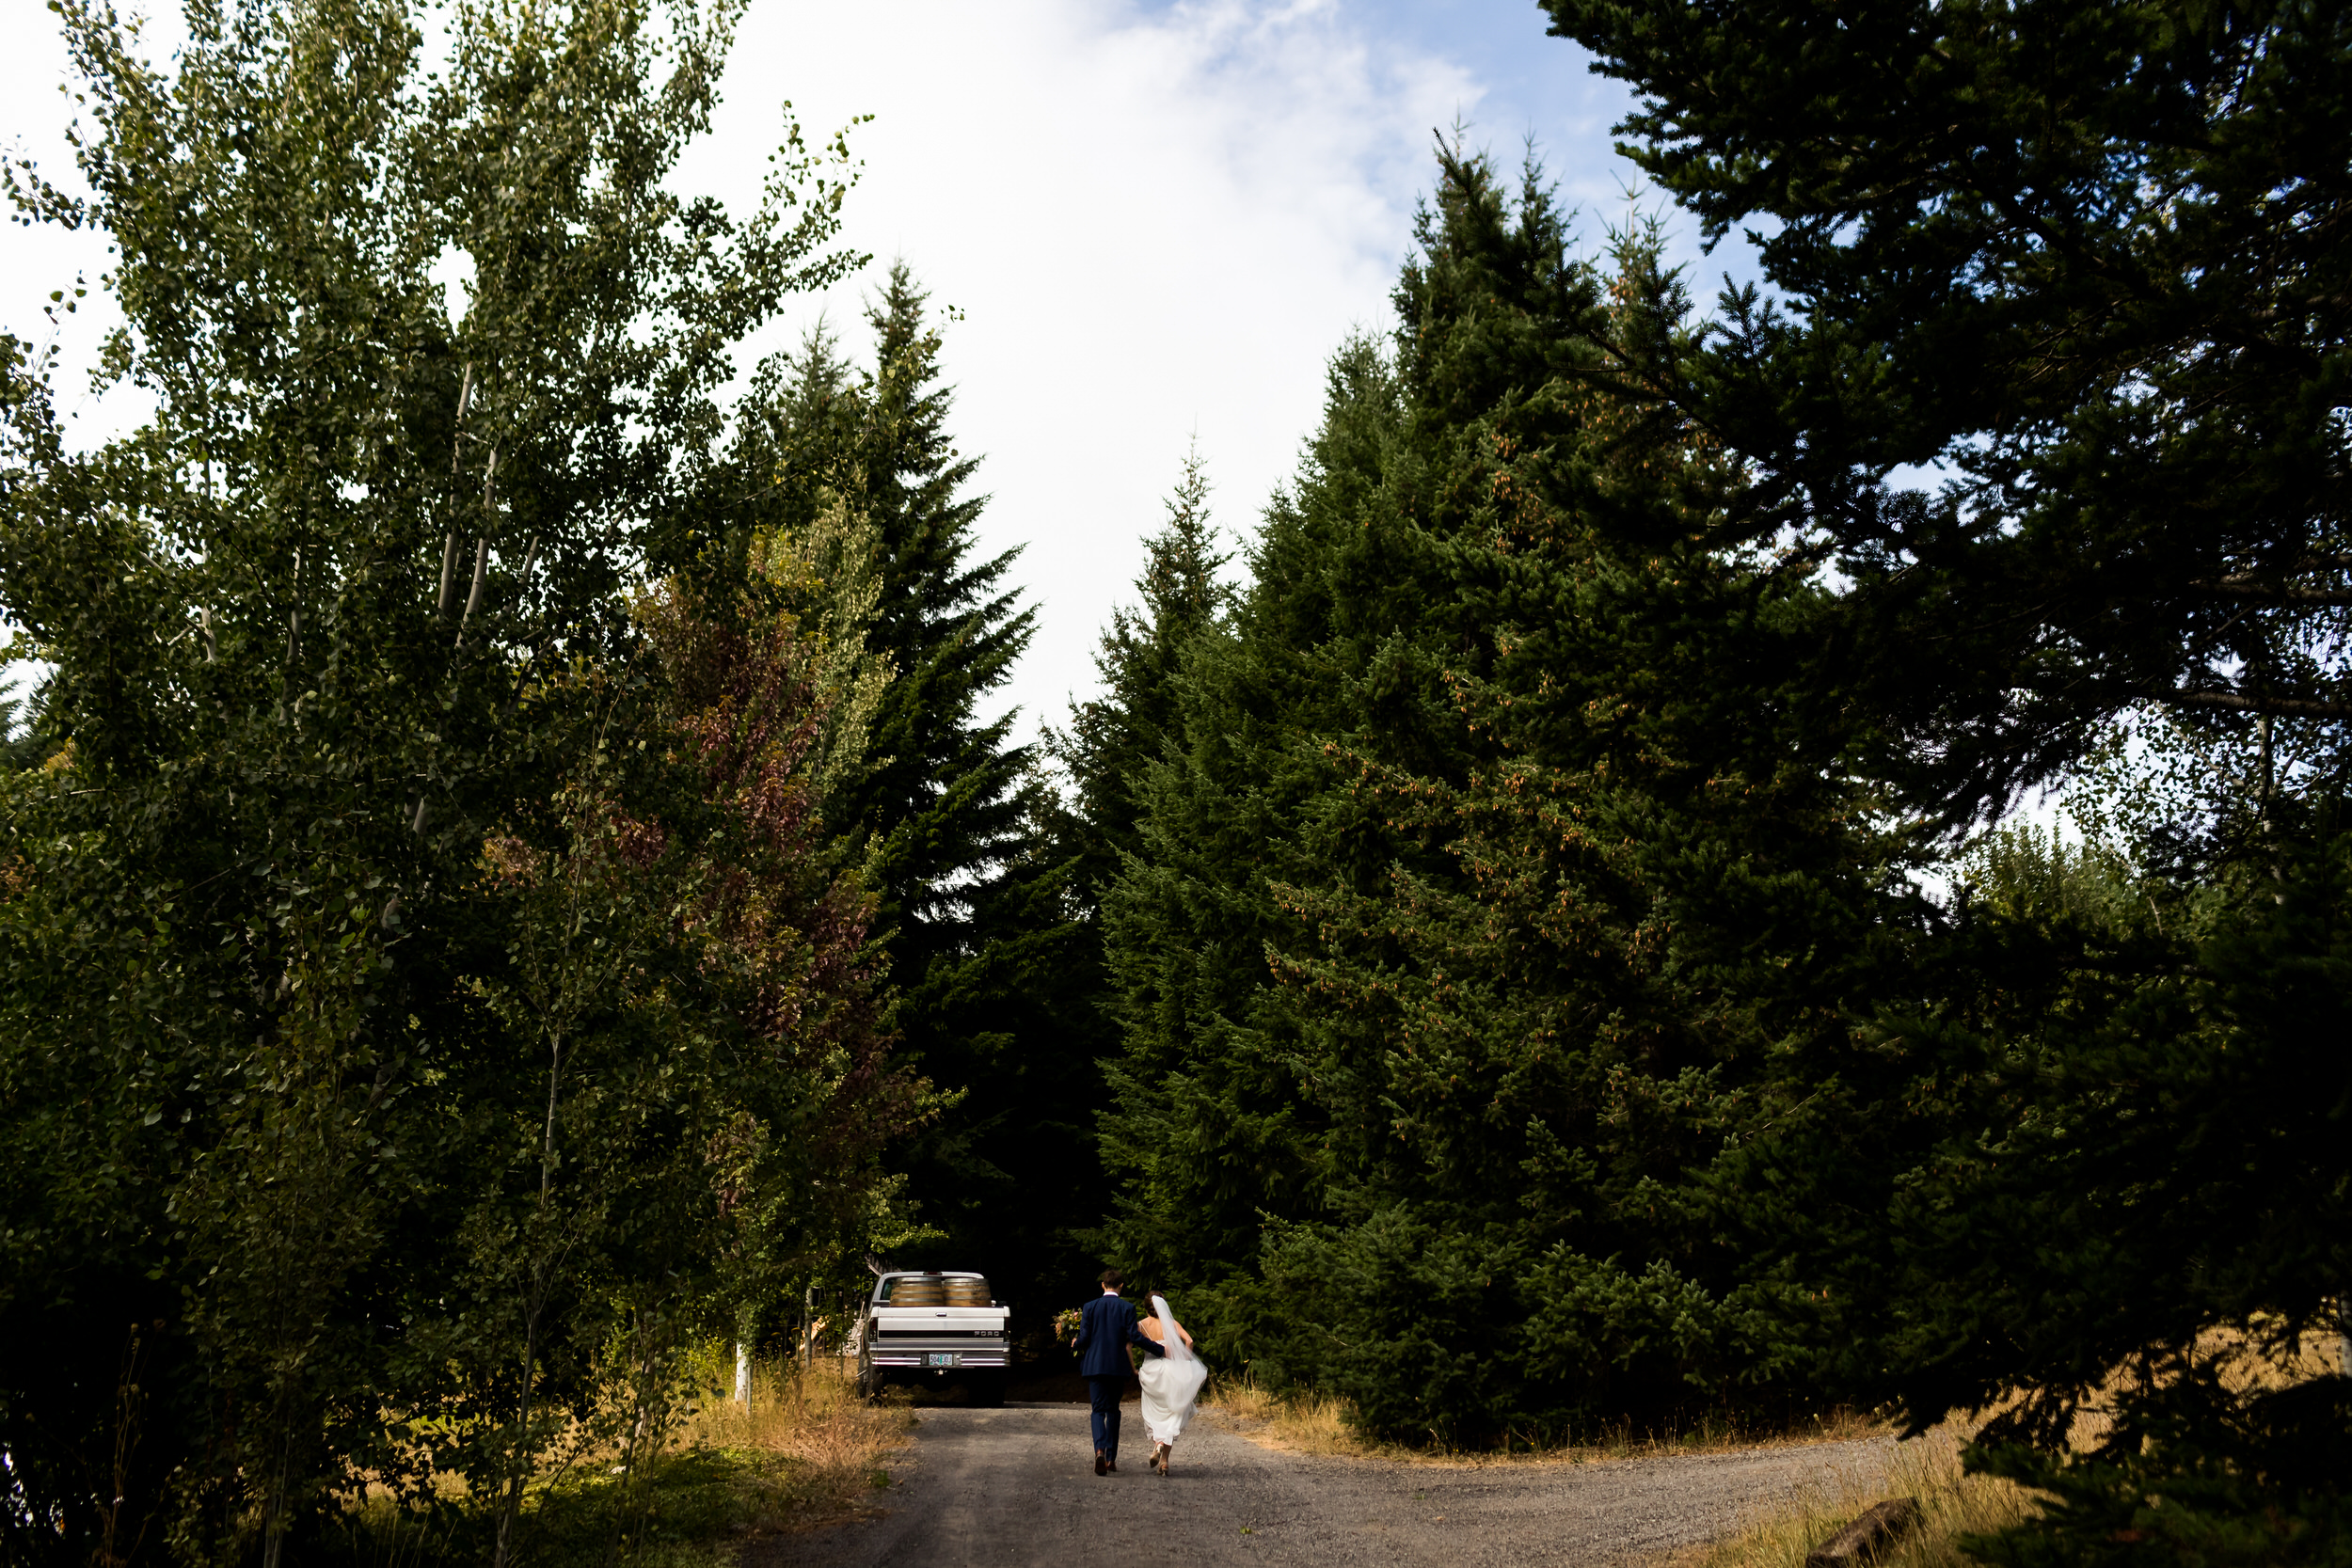 Gorge_Crest_Vineyards_Wedding_Stark_Photography_026